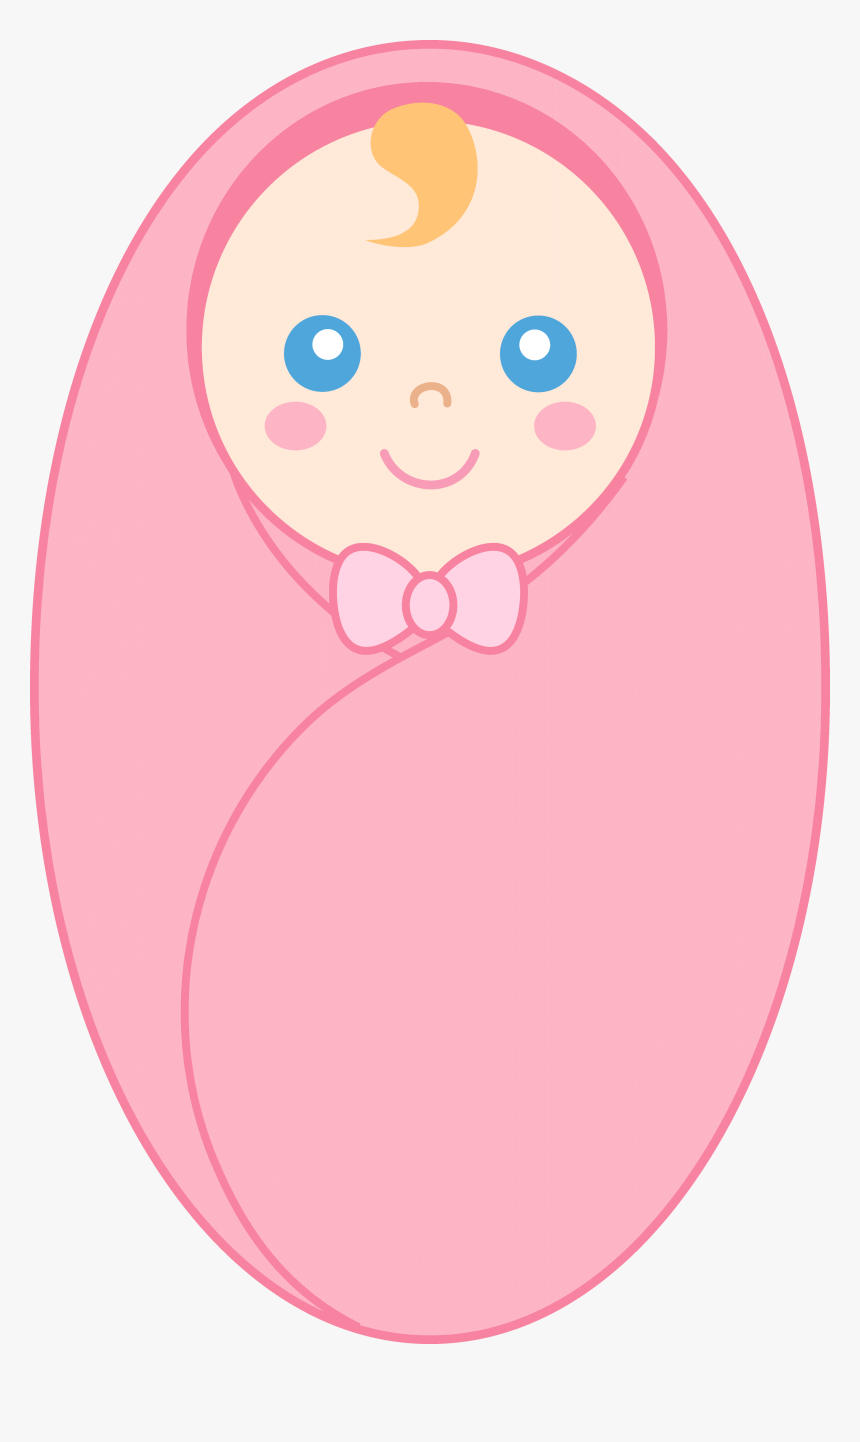 Transparent Newborn Baby Png - Baby Girl Baby Clipart, Png Download, Free Download